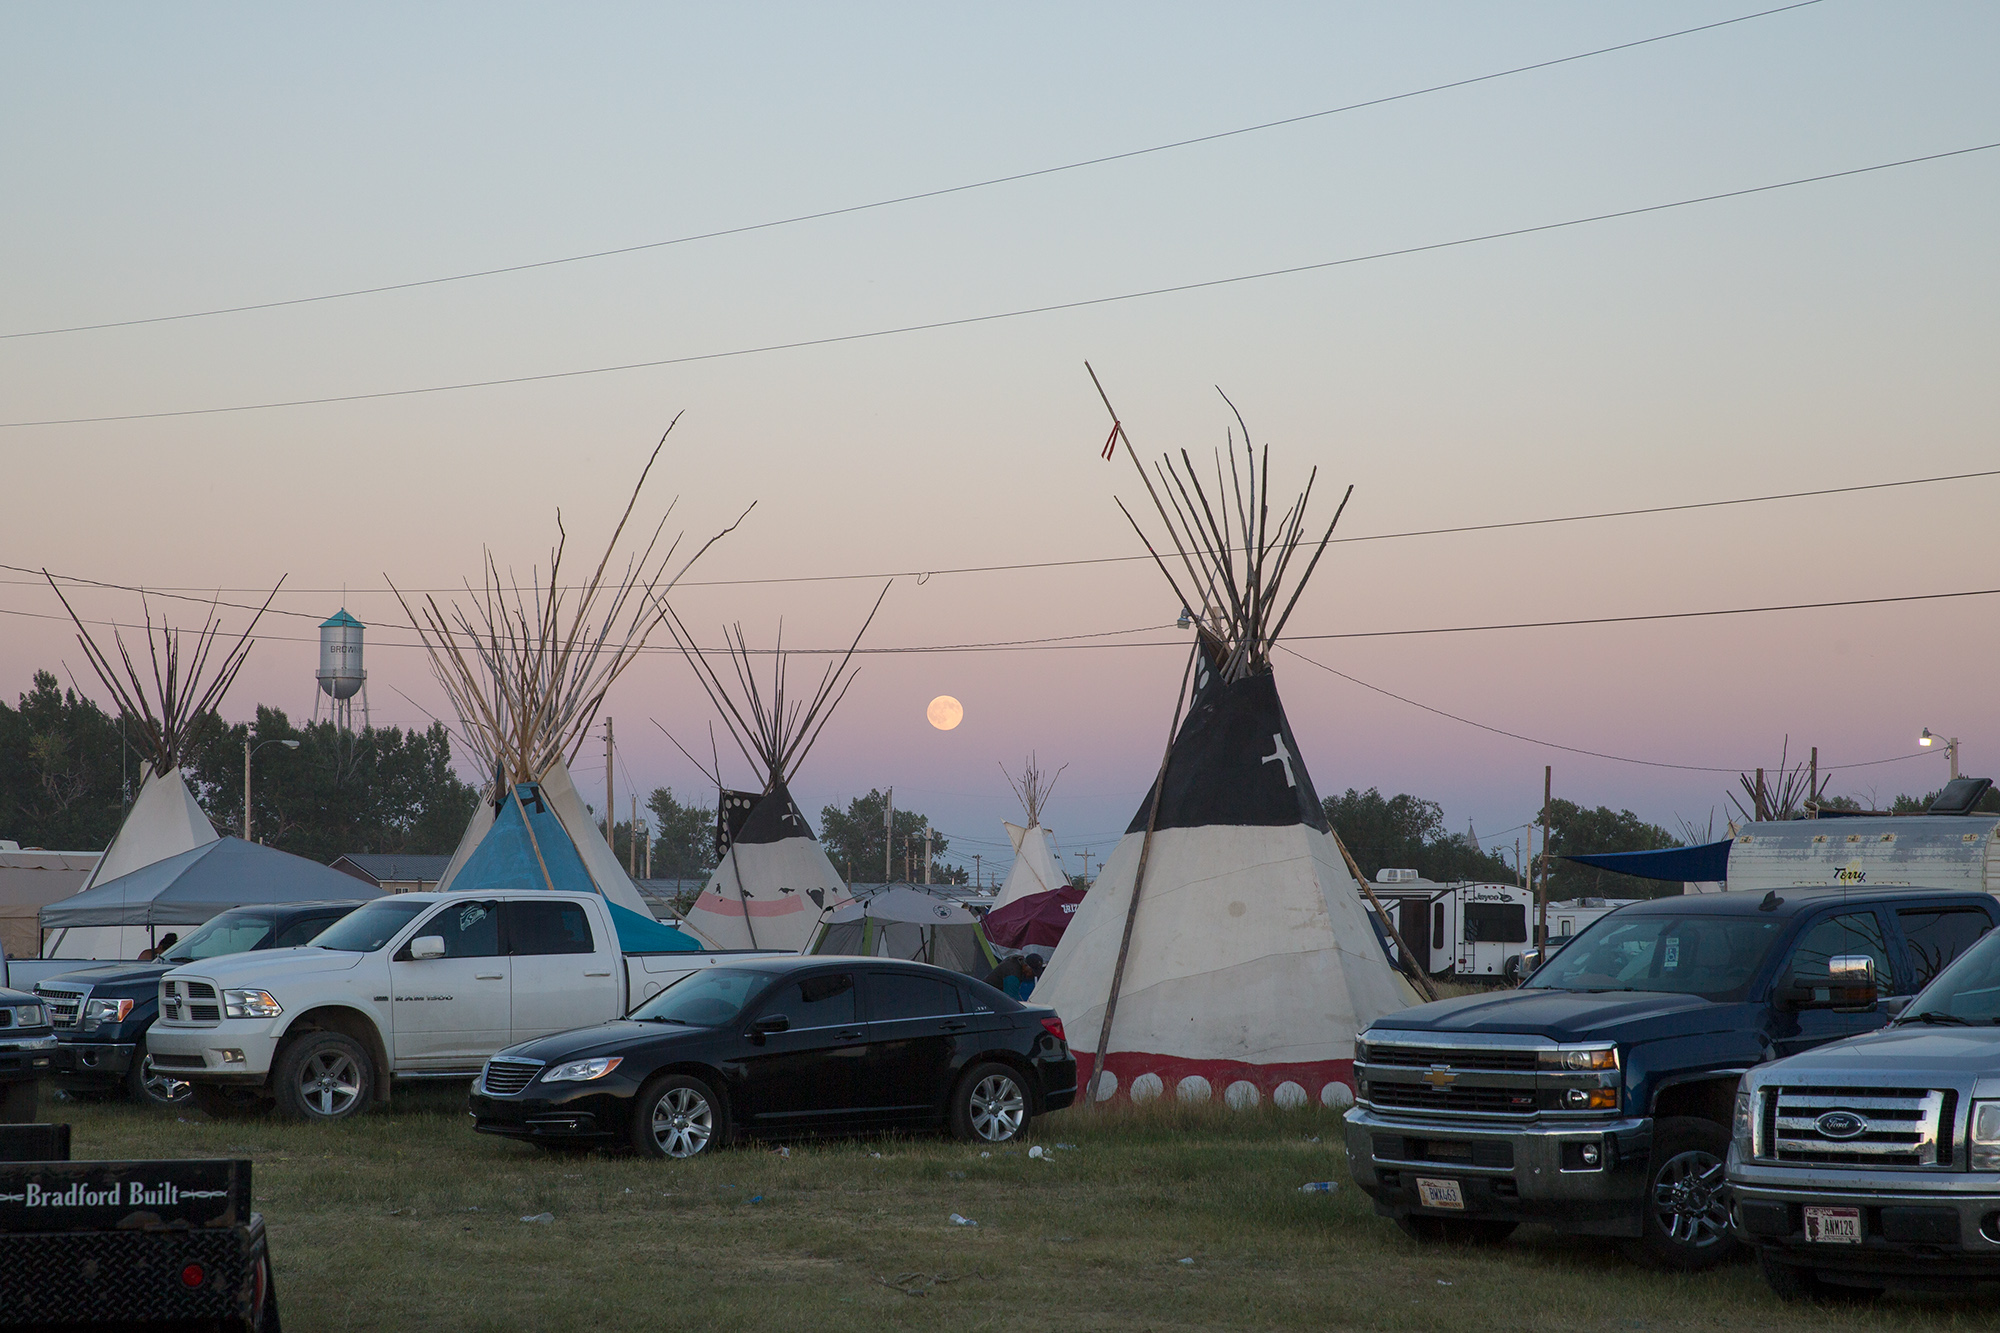 The moon rises as festivities continue at North American Indian Days in Browning, Montana.